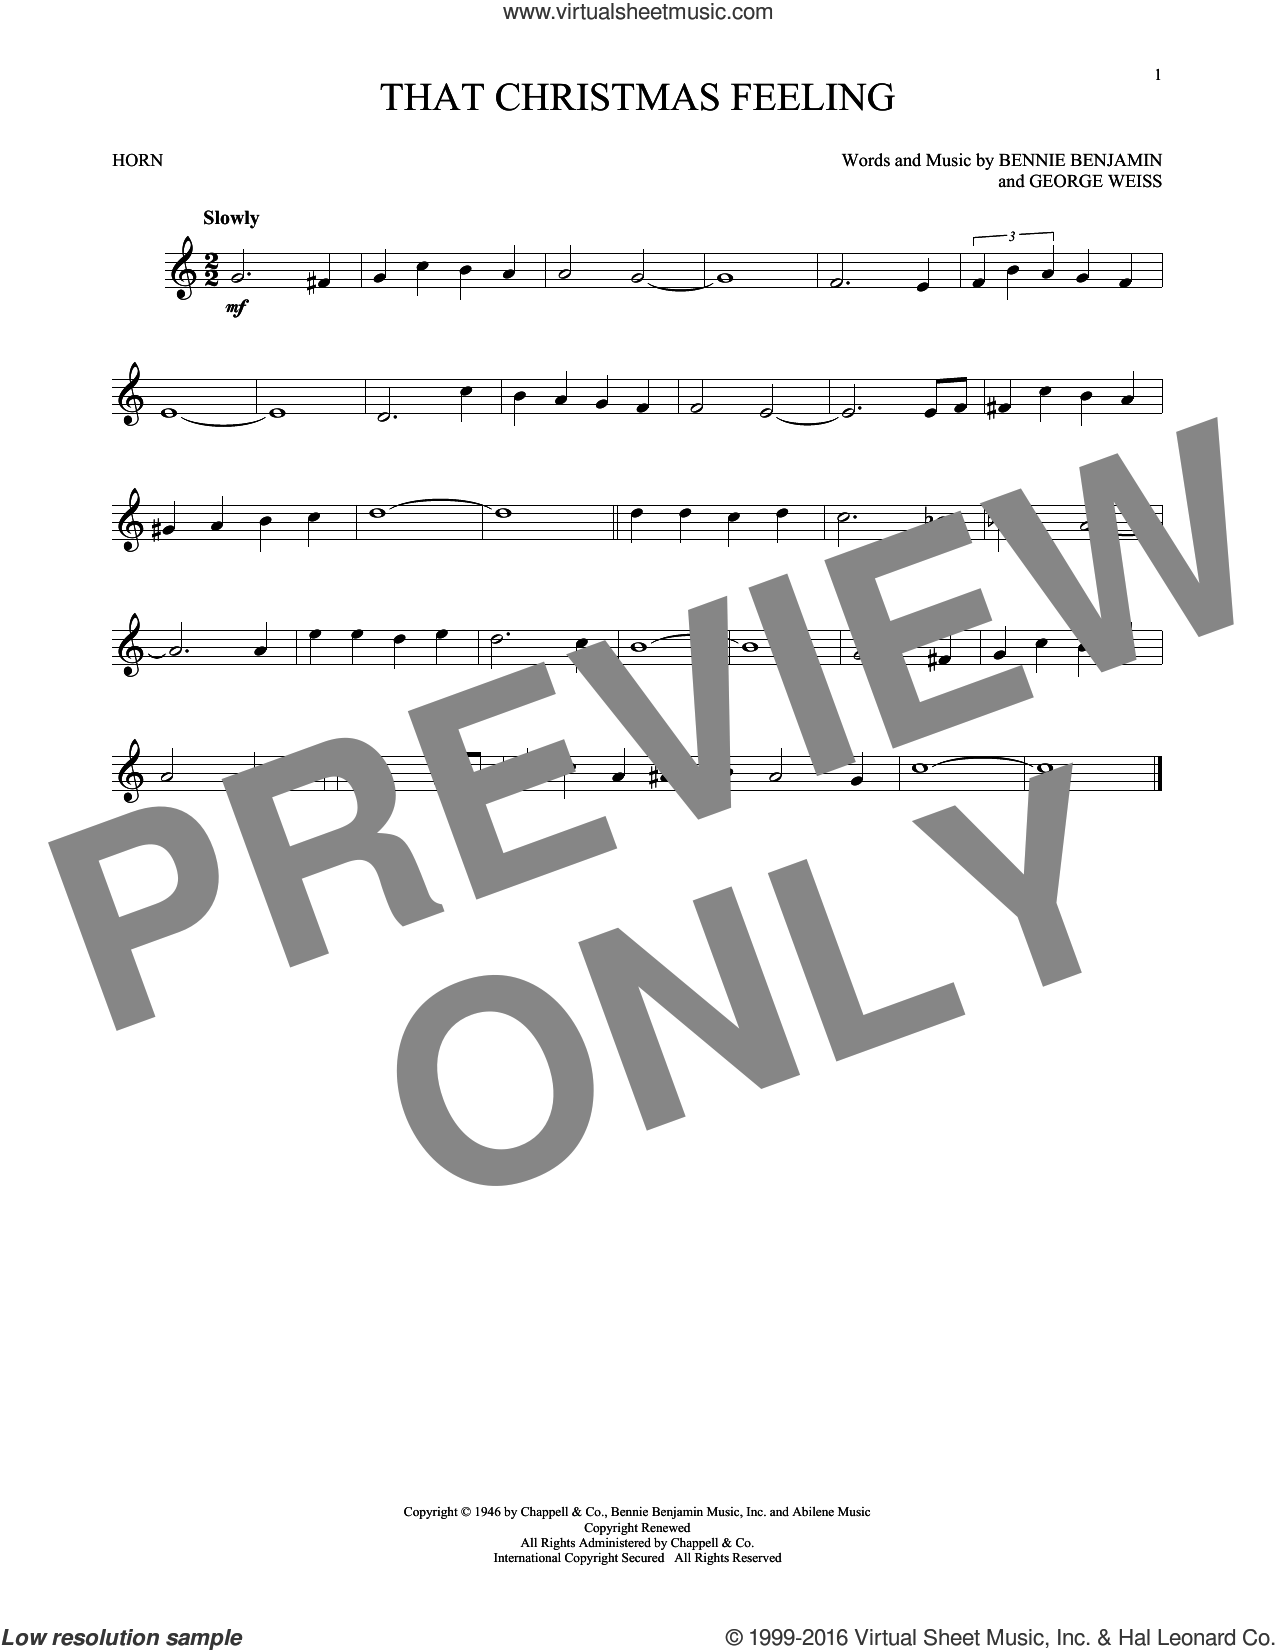 That Christmas Feeling sheet music for horn solo by George David Weiss, Bennie Benjamin and Bennie Benjamin & George Weiss, intermediate skill level